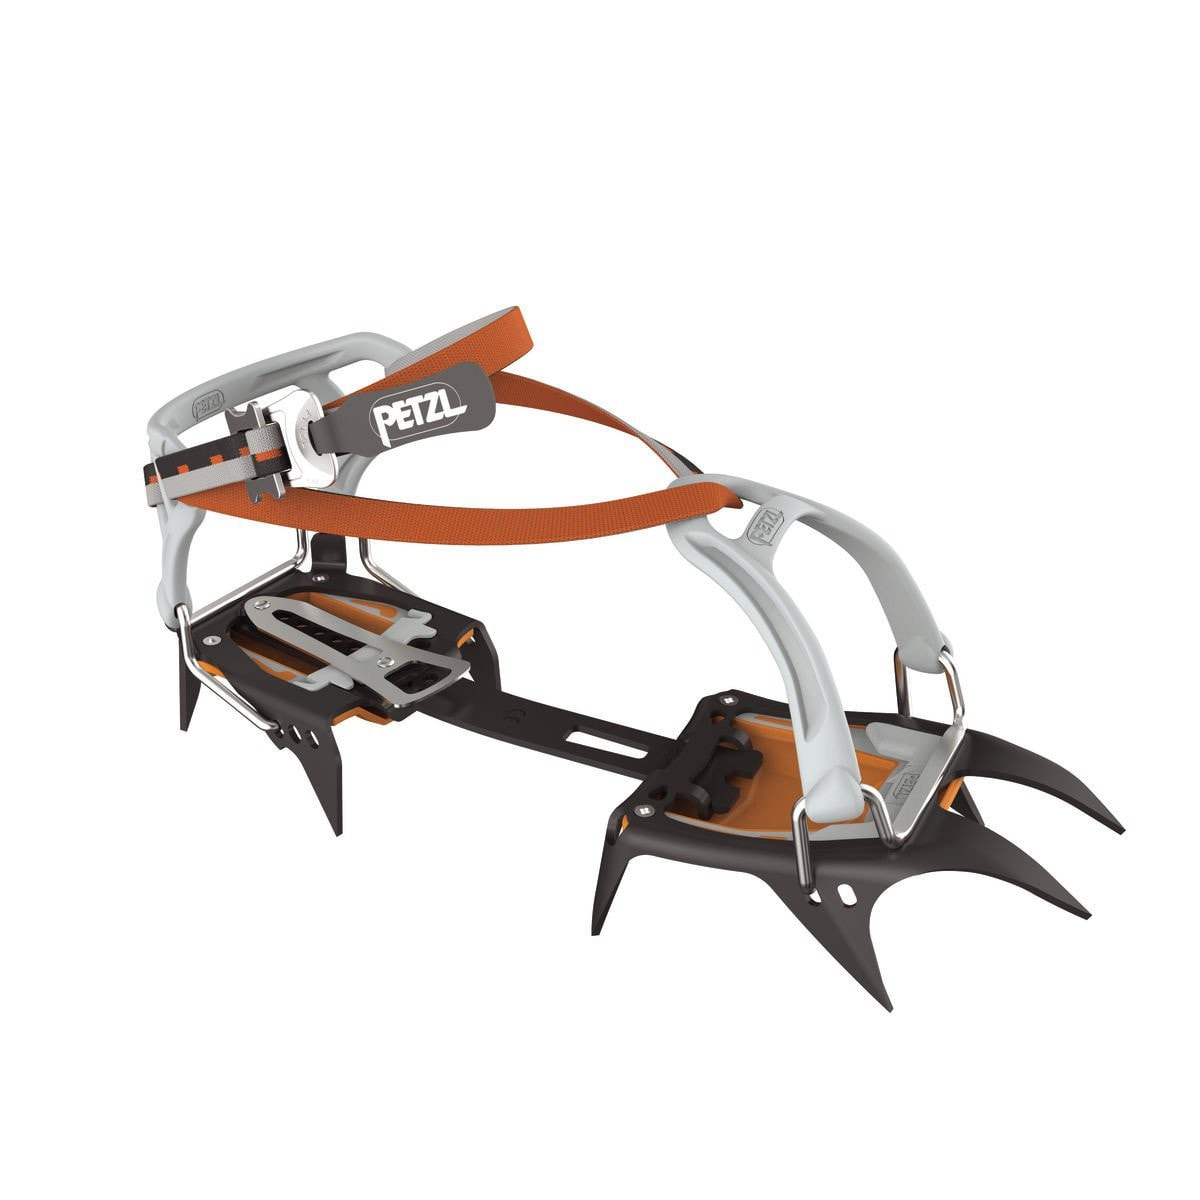 Petzl Irvis FlexLock Crampon, in black, orange and silver colours